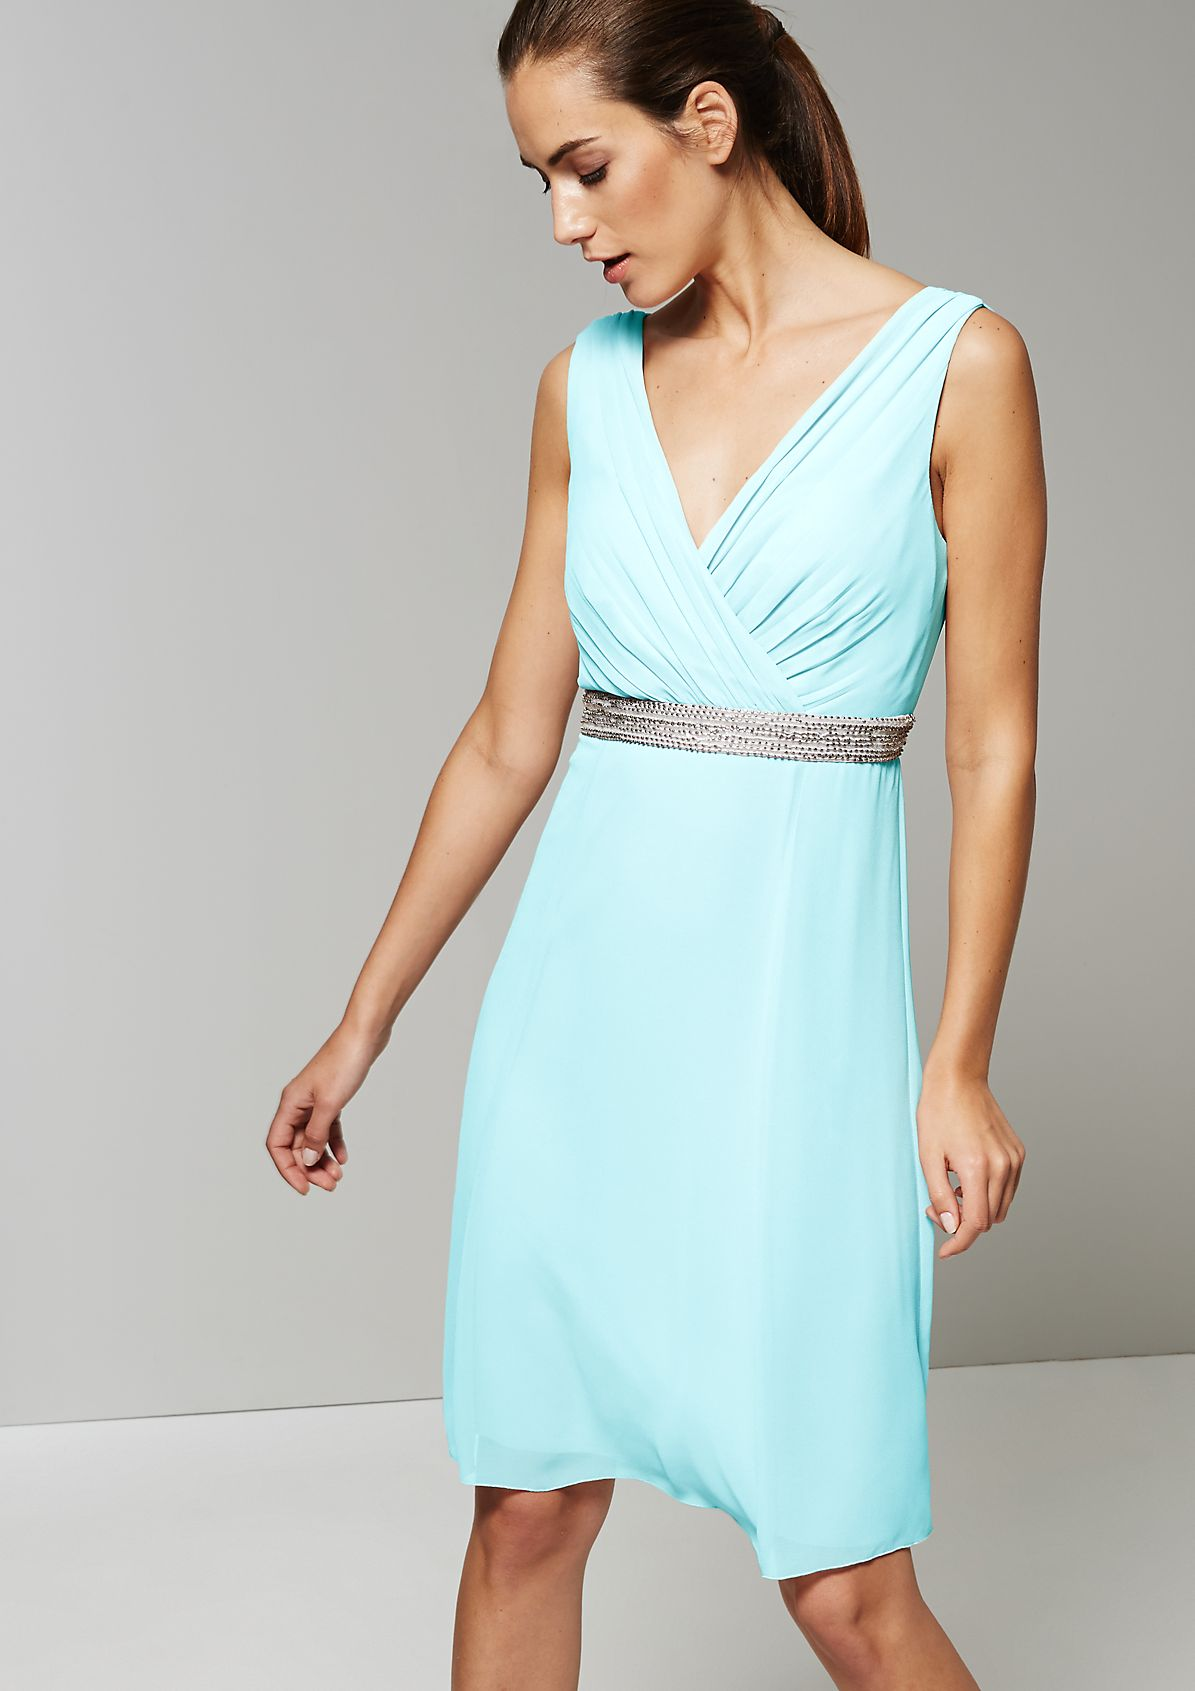 Elegant crêpe dress with a beautiful sequin trim from s.Oliver